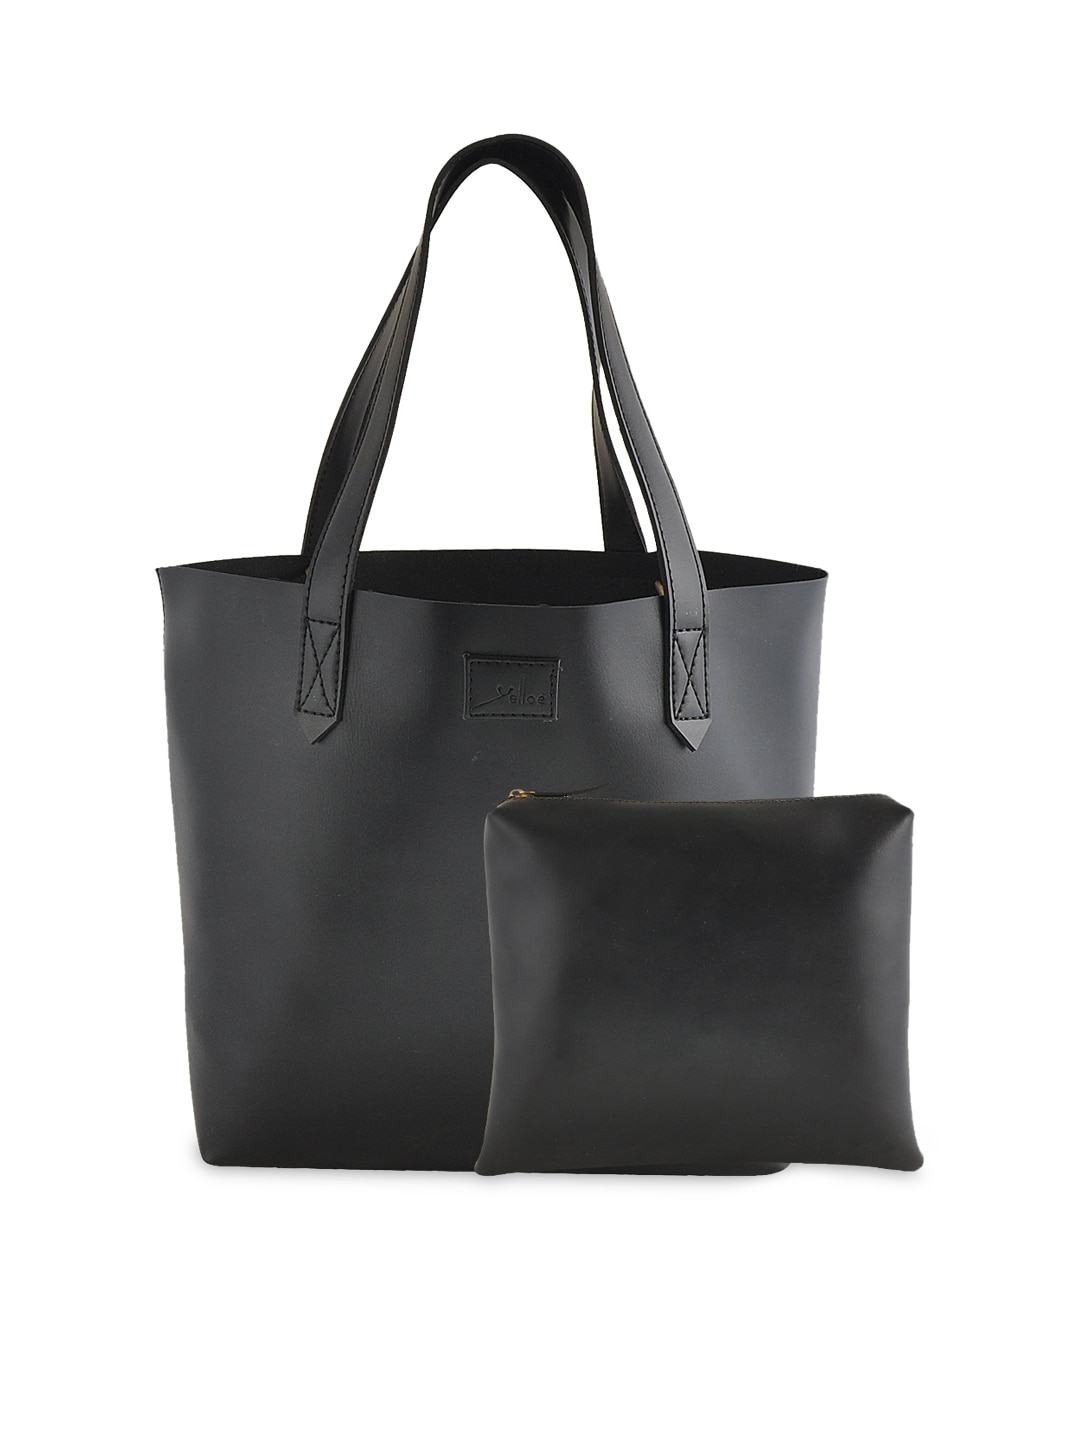 45711026242 Tote Bag - Buy Latest Tote Bags For Women   Girls Online   Myntra